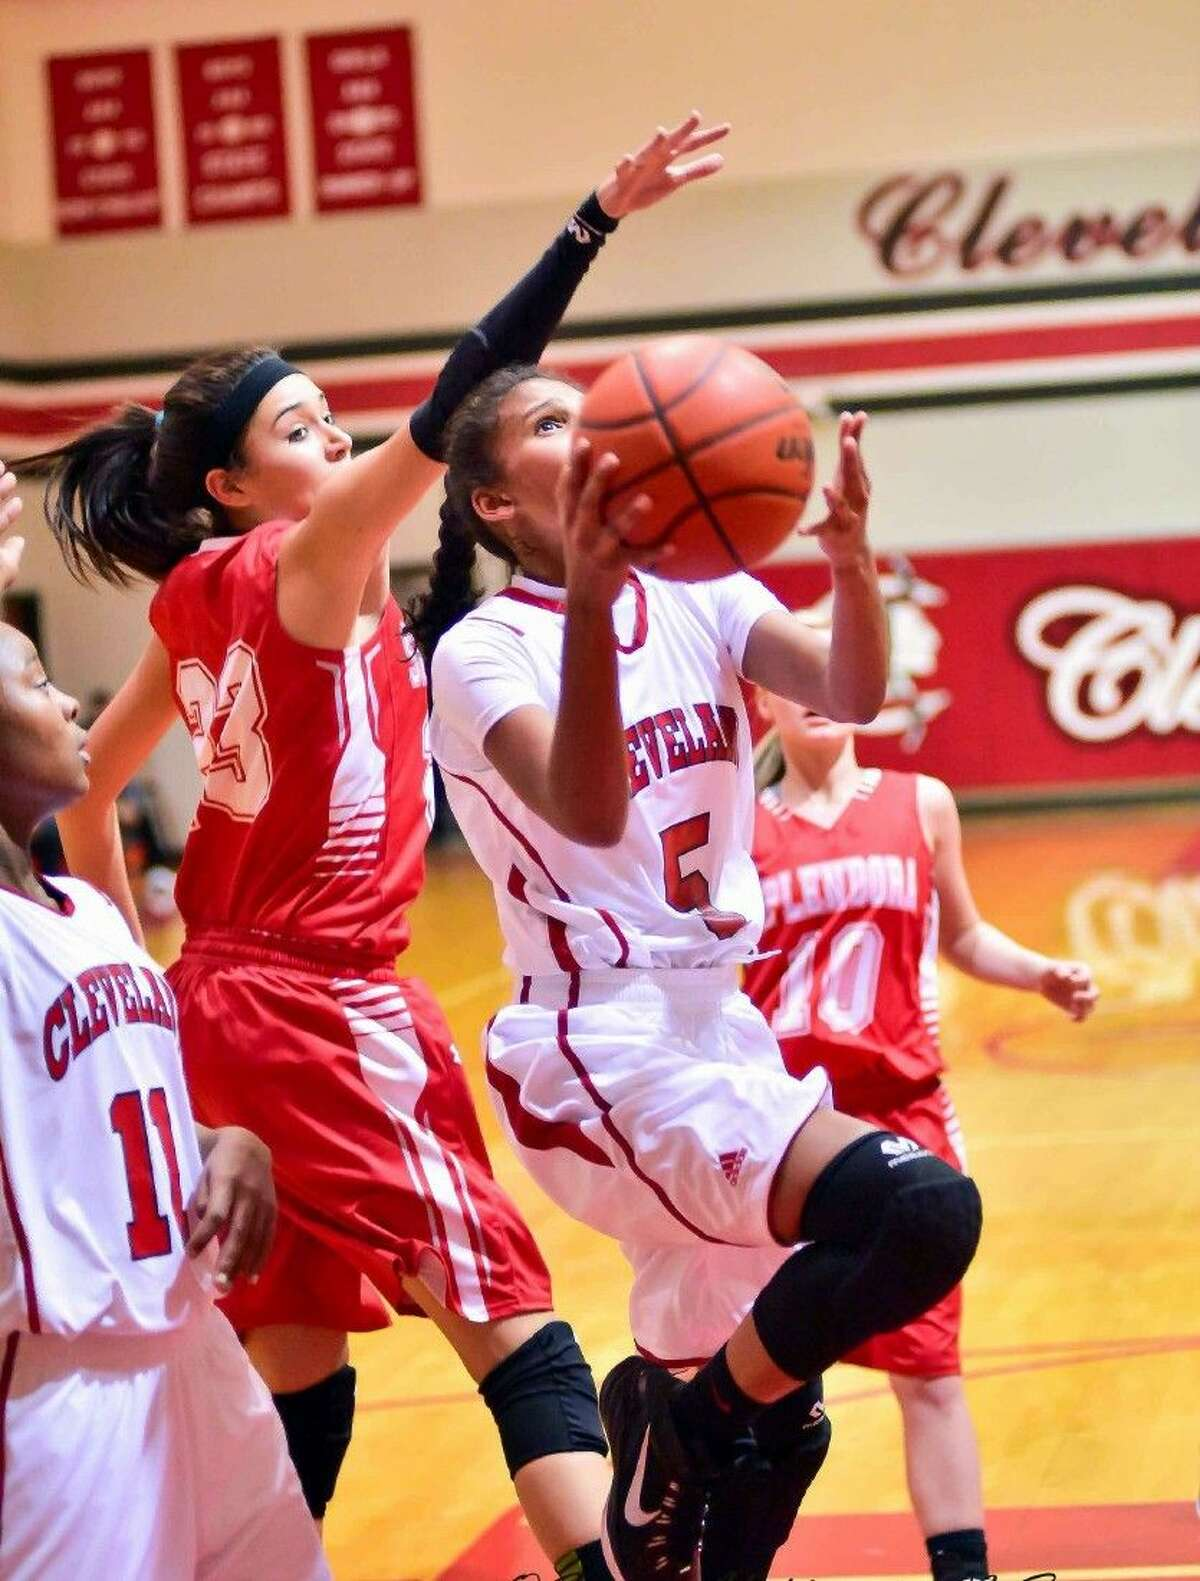 Simran Mayfield shoots for Cleveland with Splendora's Zoe O'Steen reaching for the block, Jan. 13, 2015.